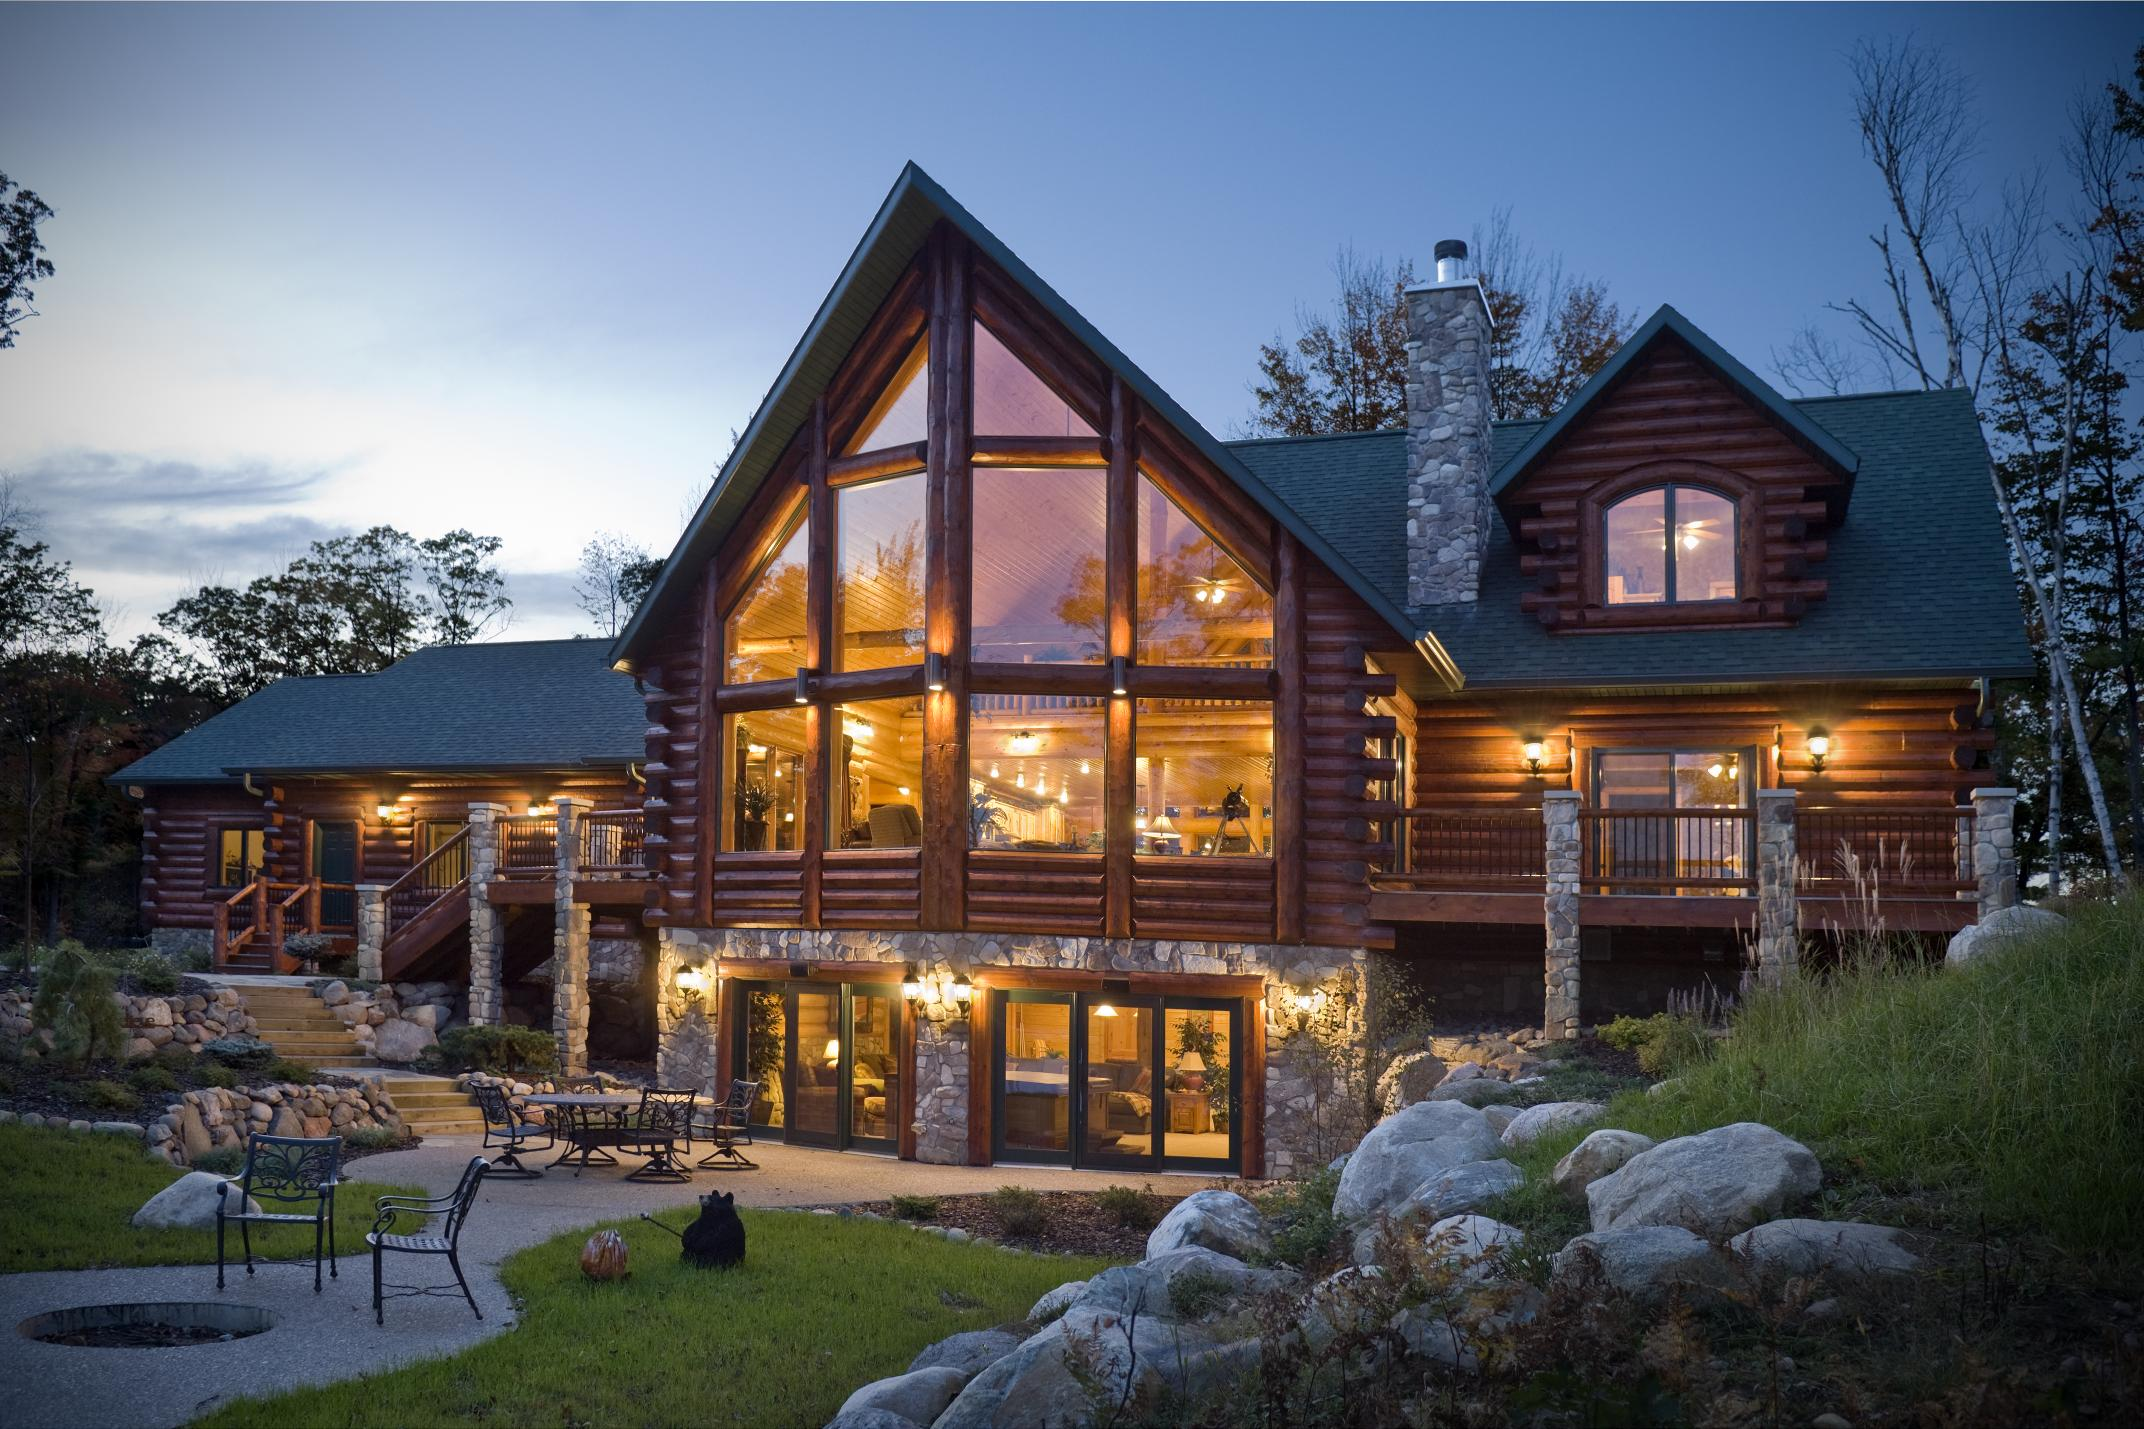 Log home built by and photo courtesy of Golden Eagle Log Homes